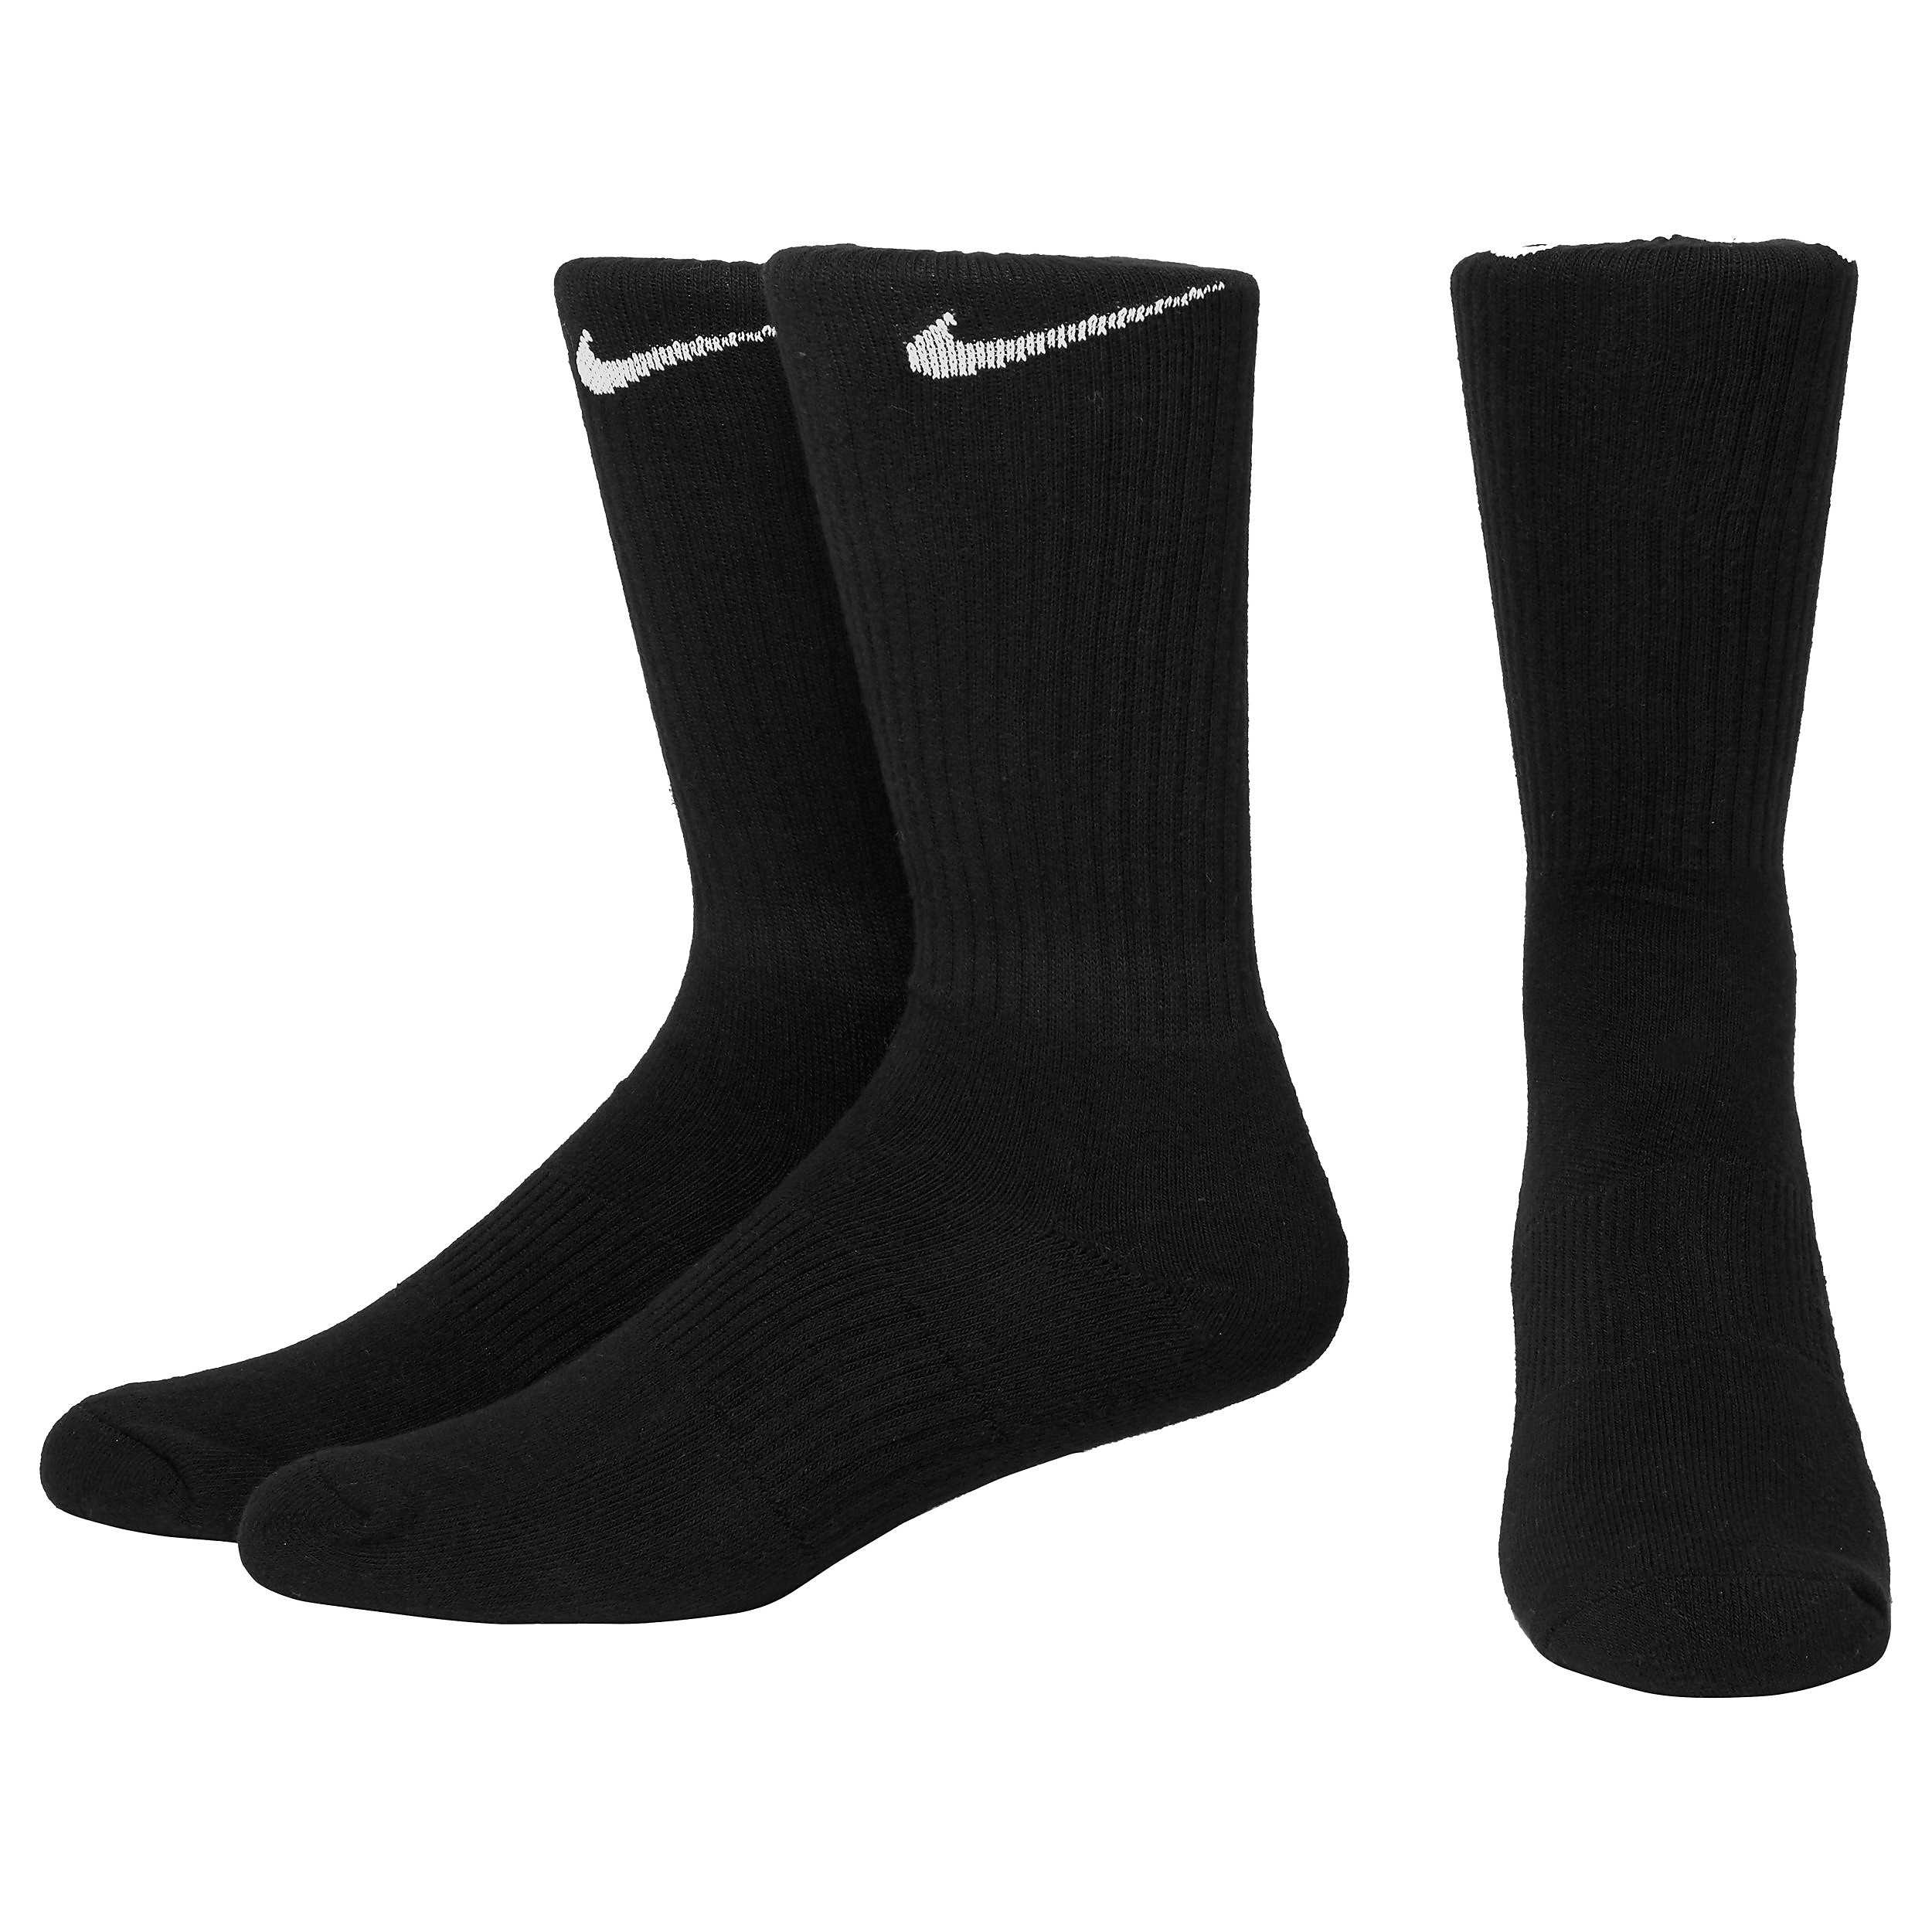 Nike 3 Pack Dri-FIT Cushion Crew Socks